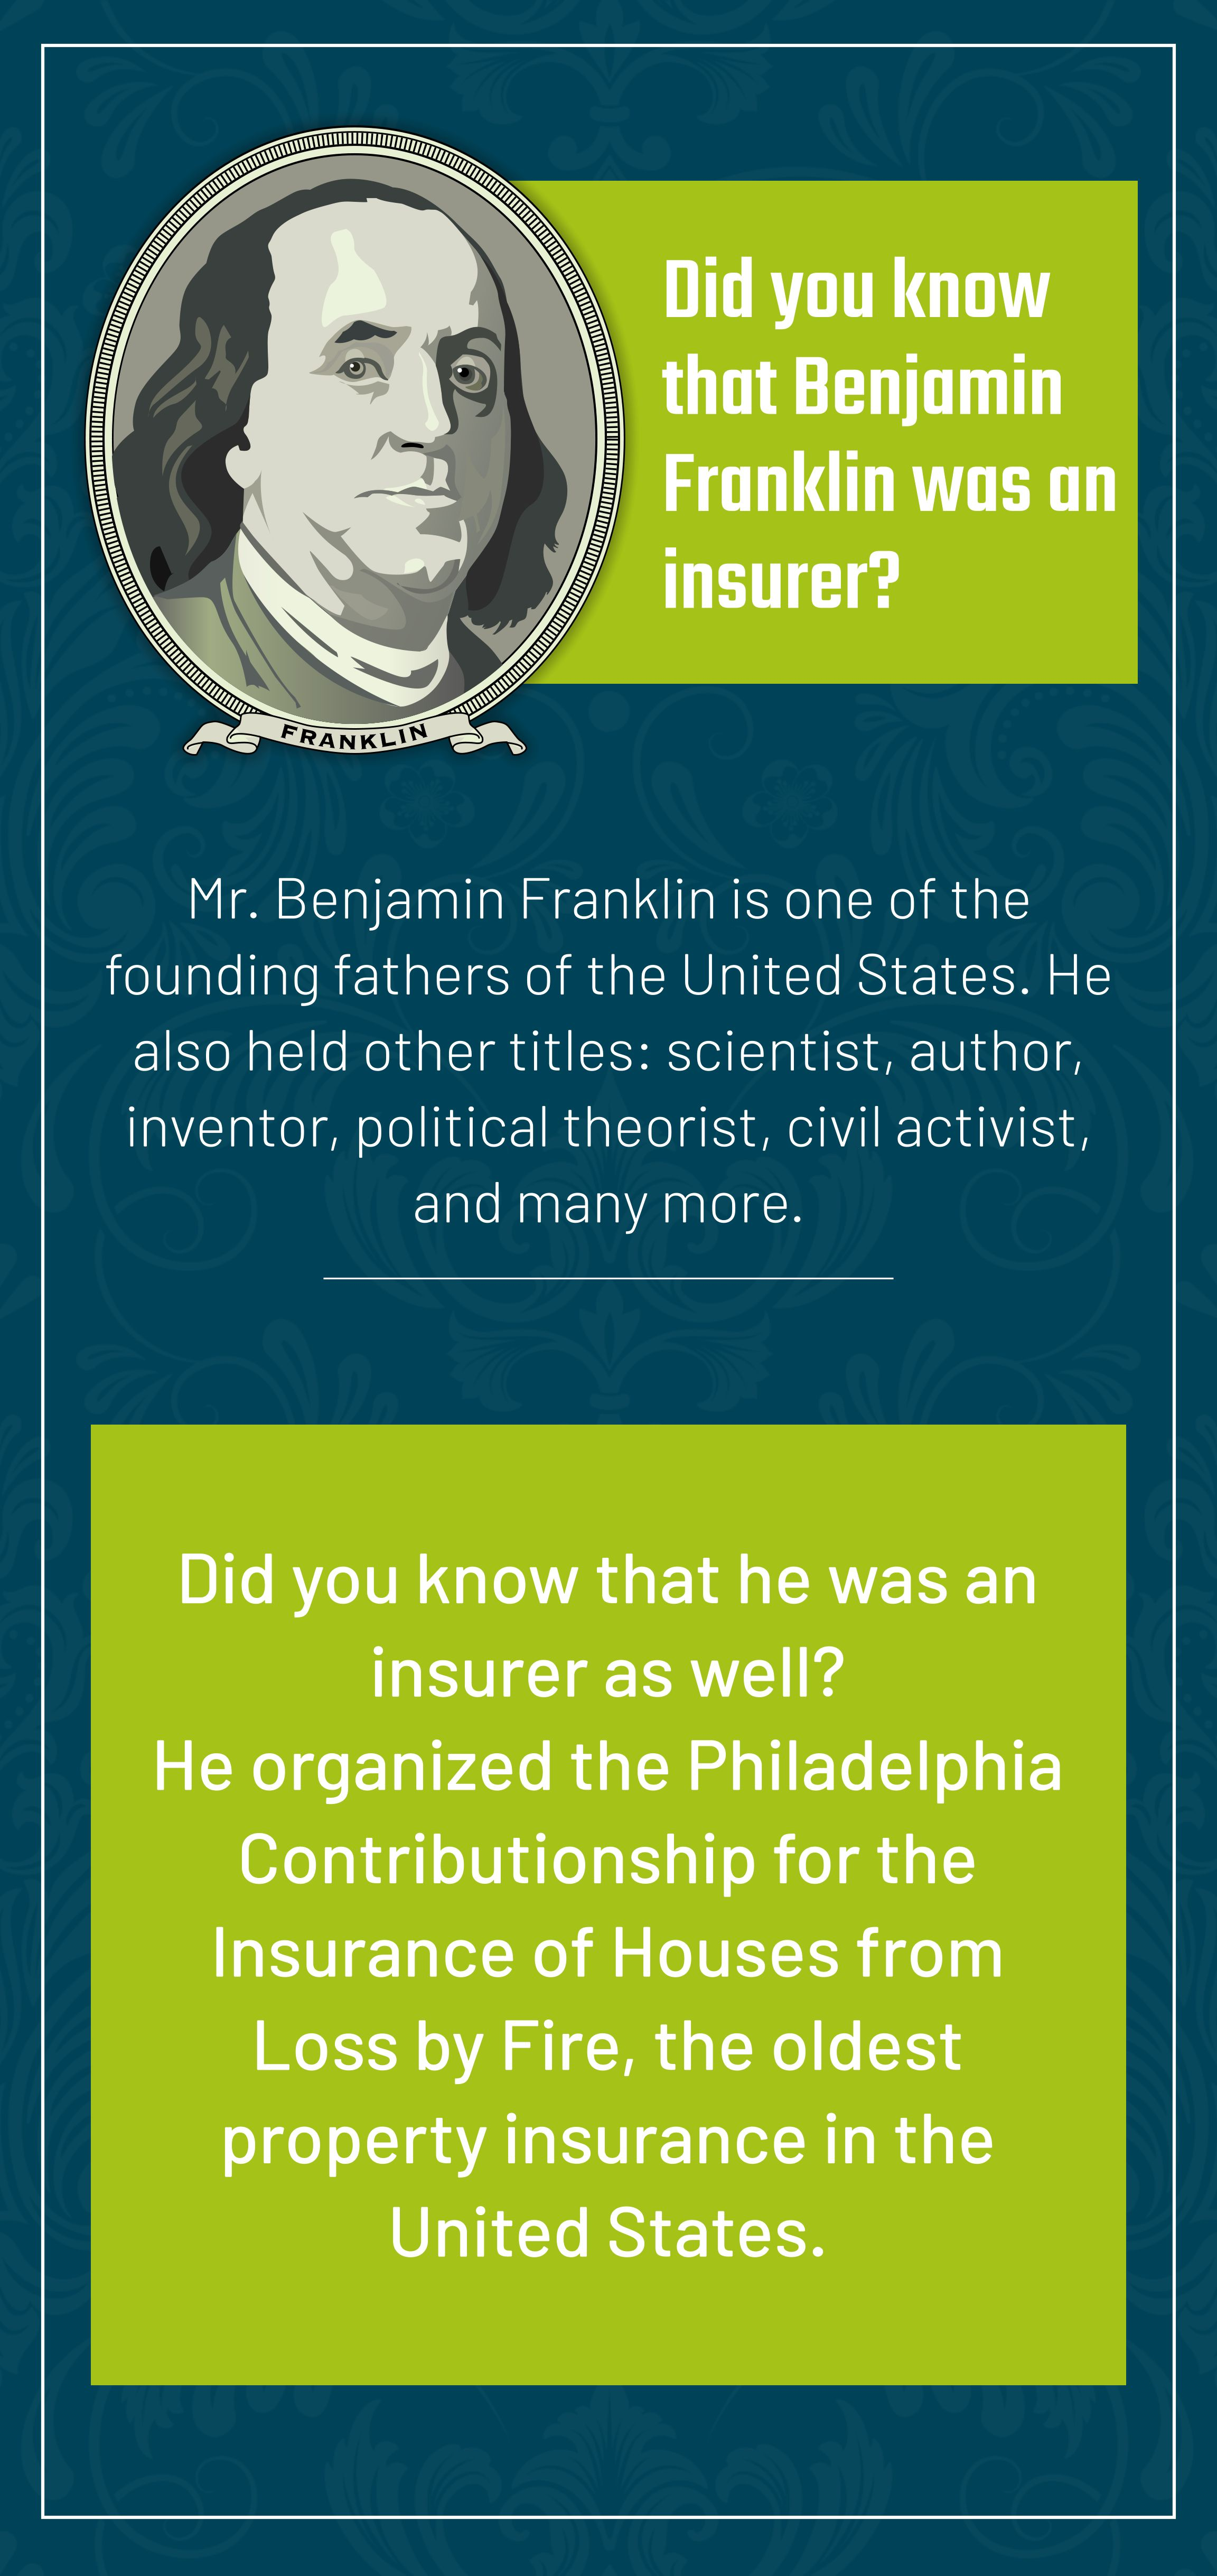 Did you know that benjamin franklin was an insurer